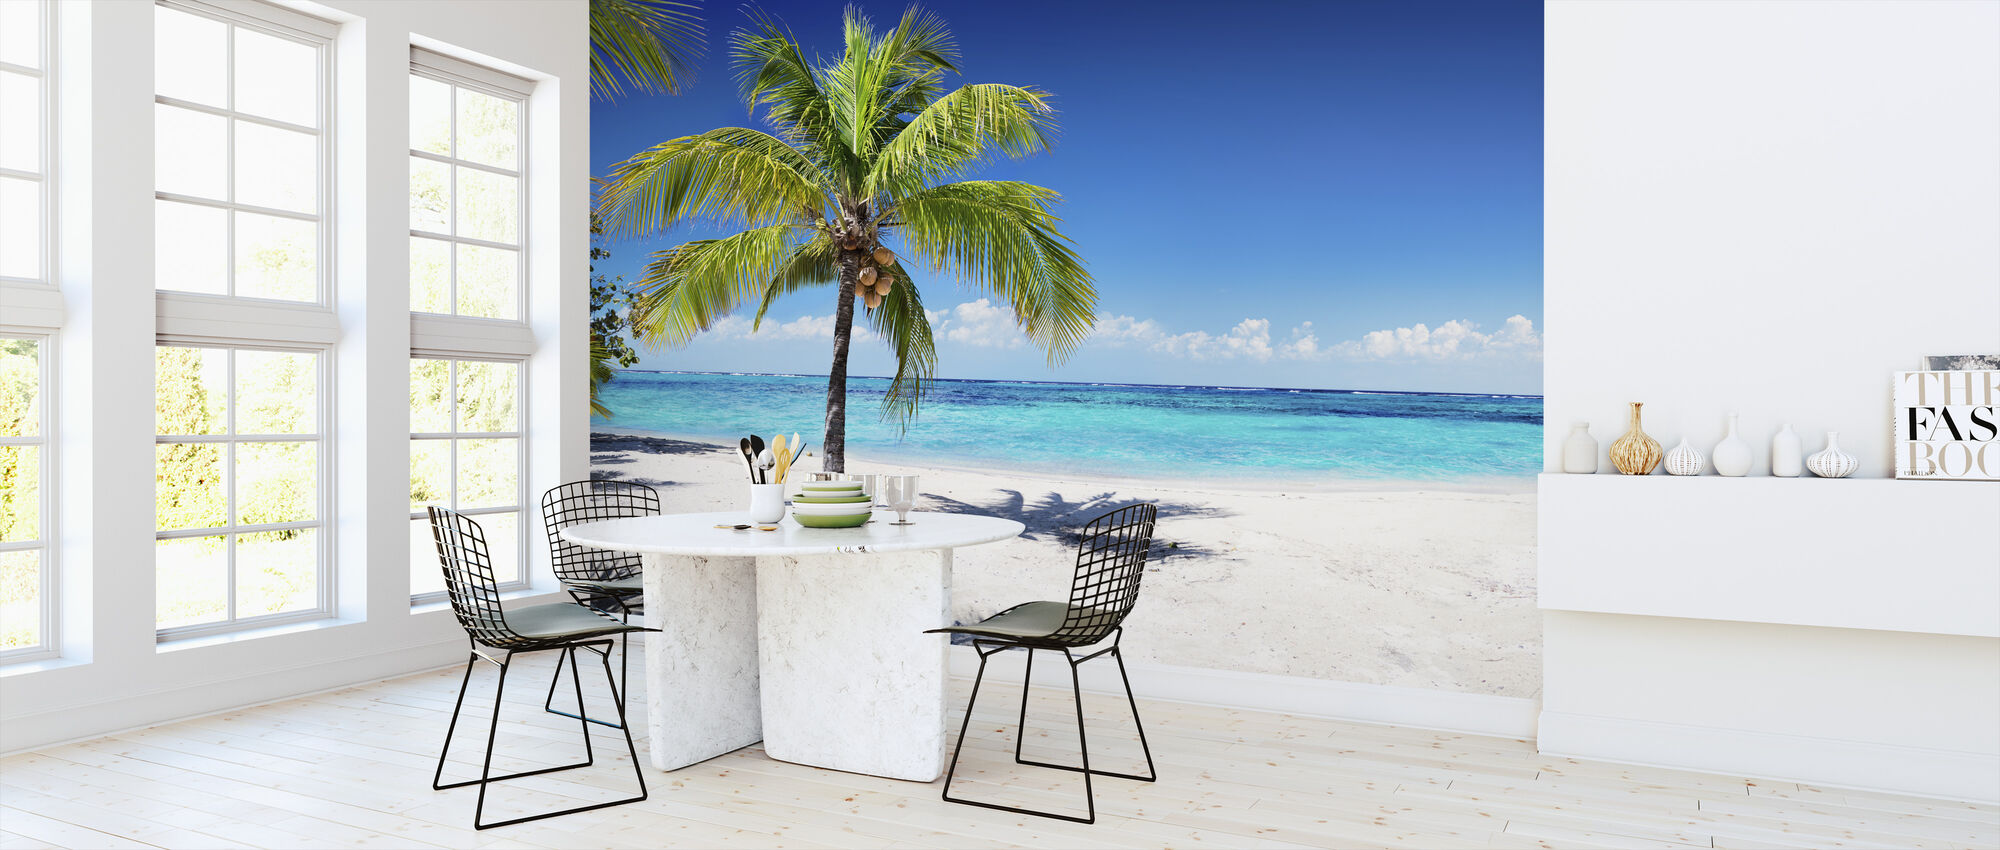 Coral Beach with Palm Tree - Wallpaper - Kitchen